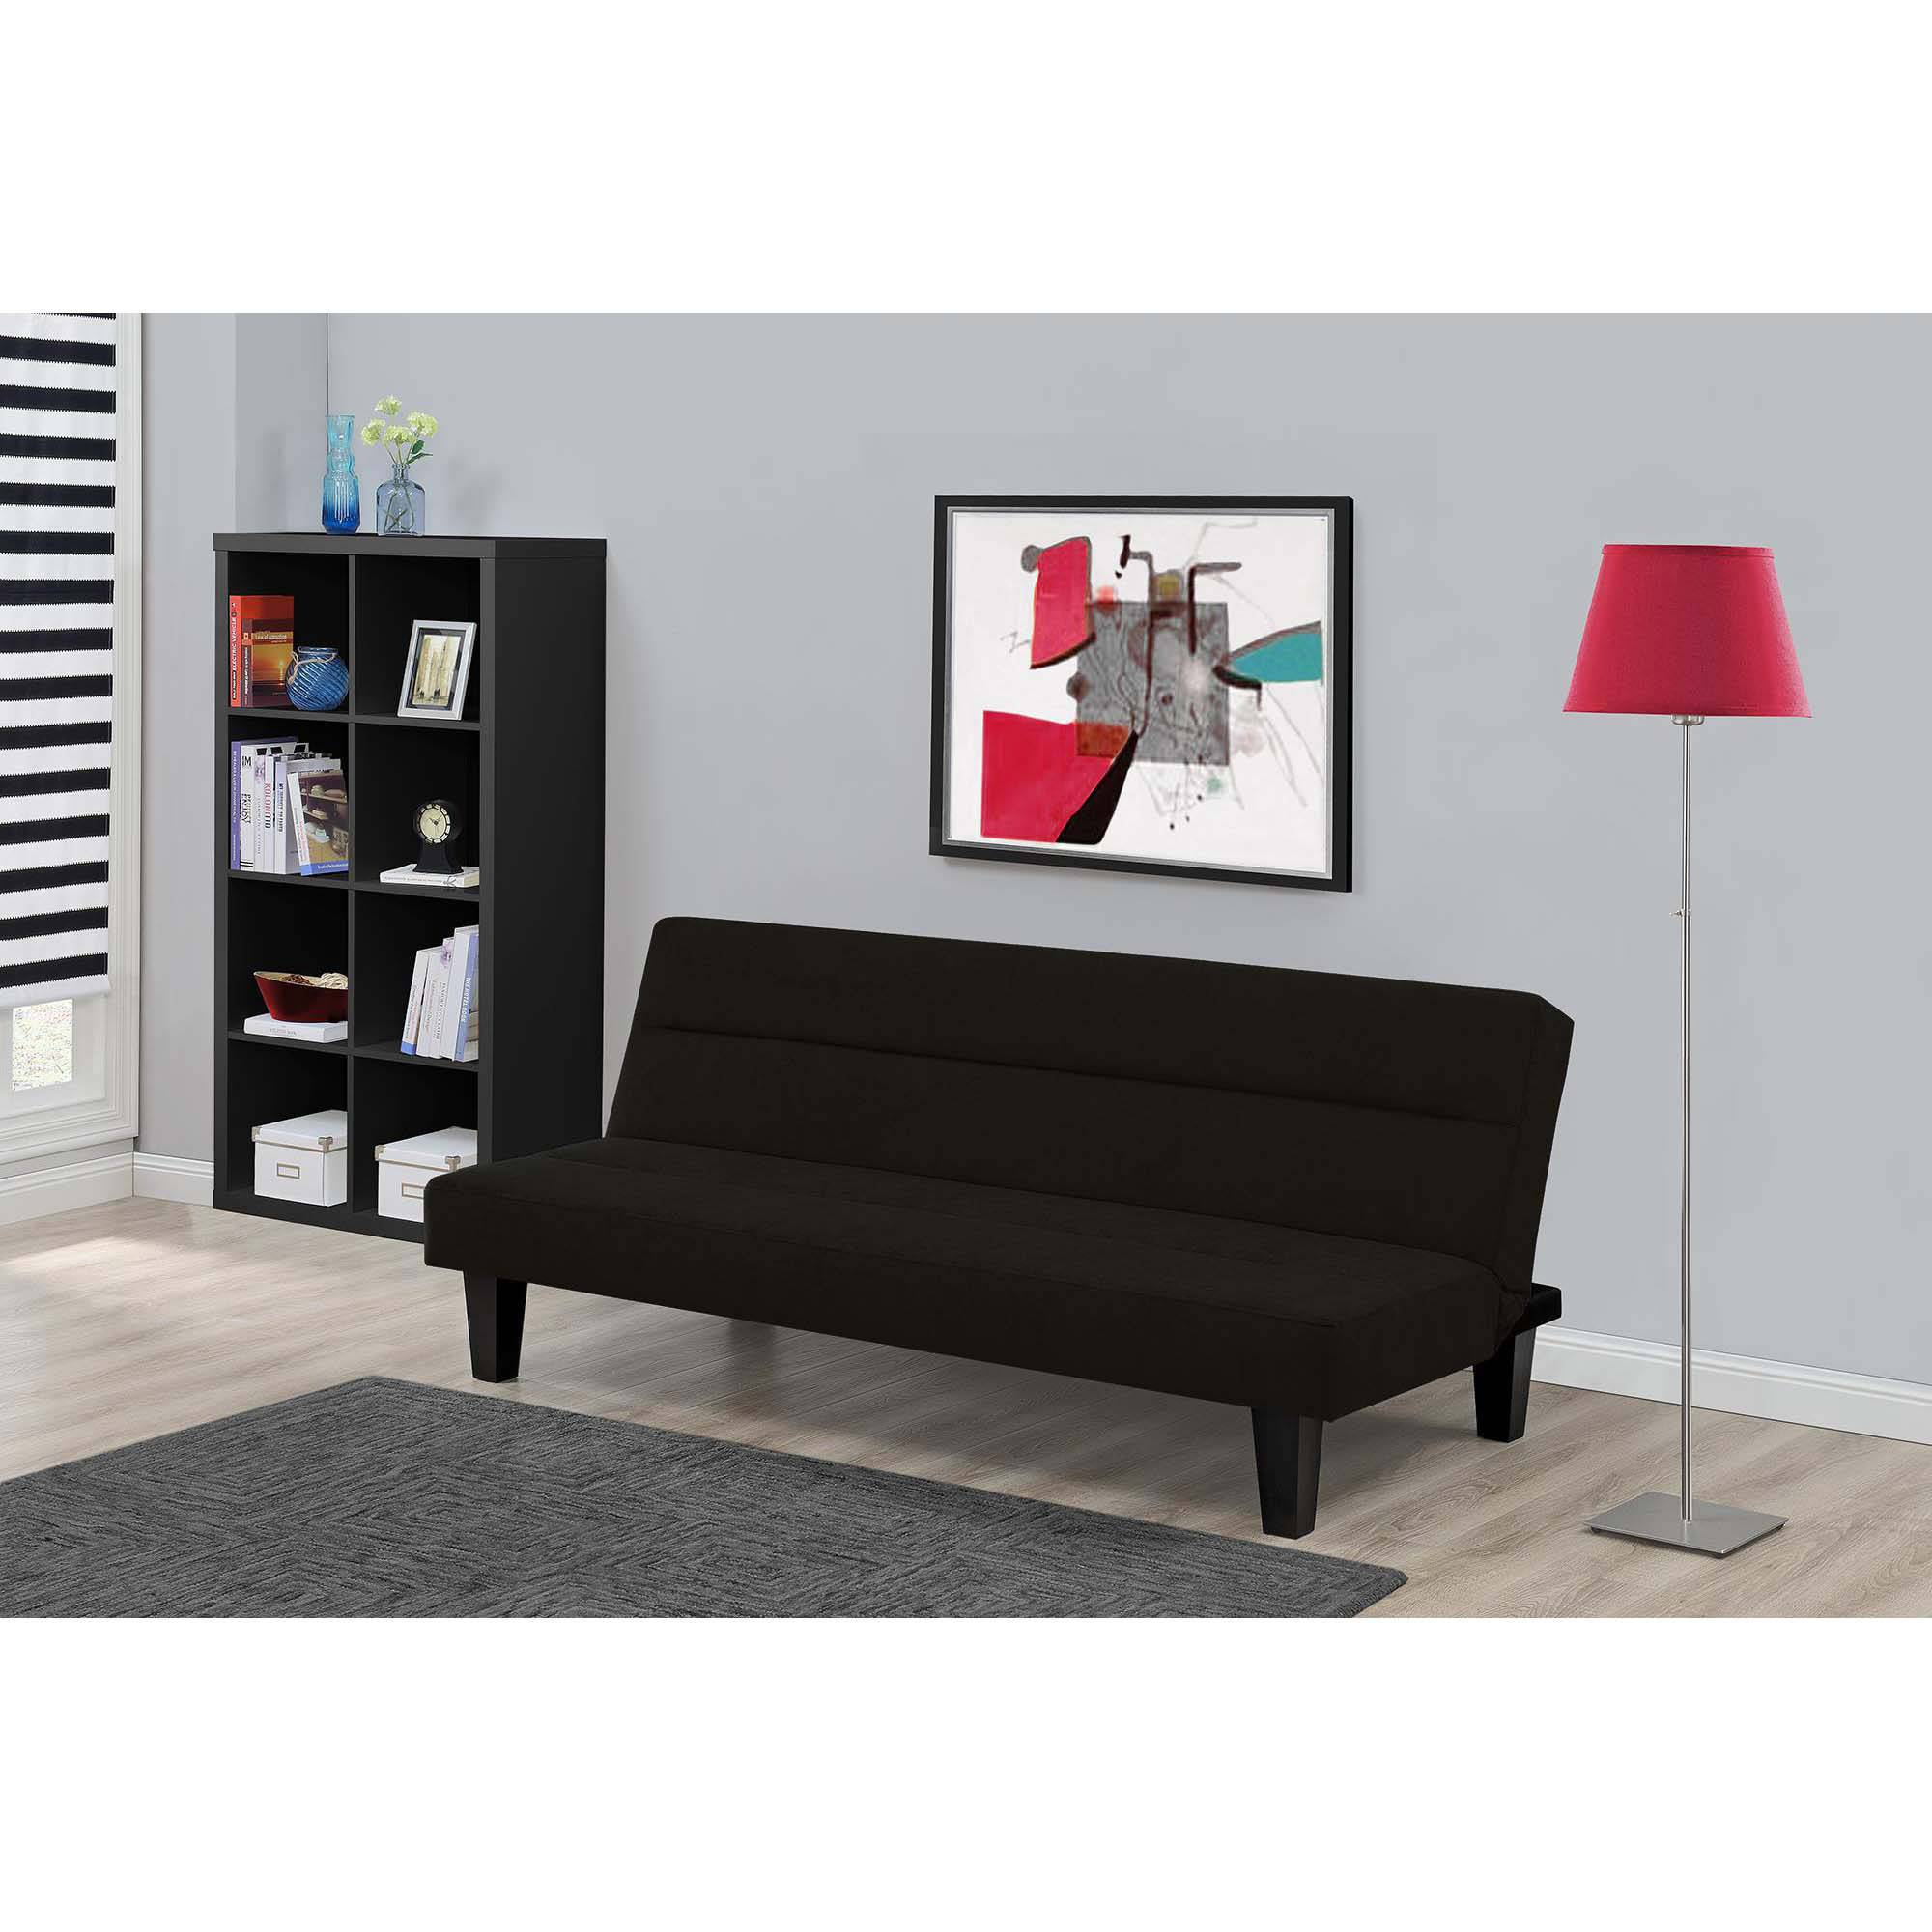 Coaster pany Chocolate Mallory Sectional Walmart